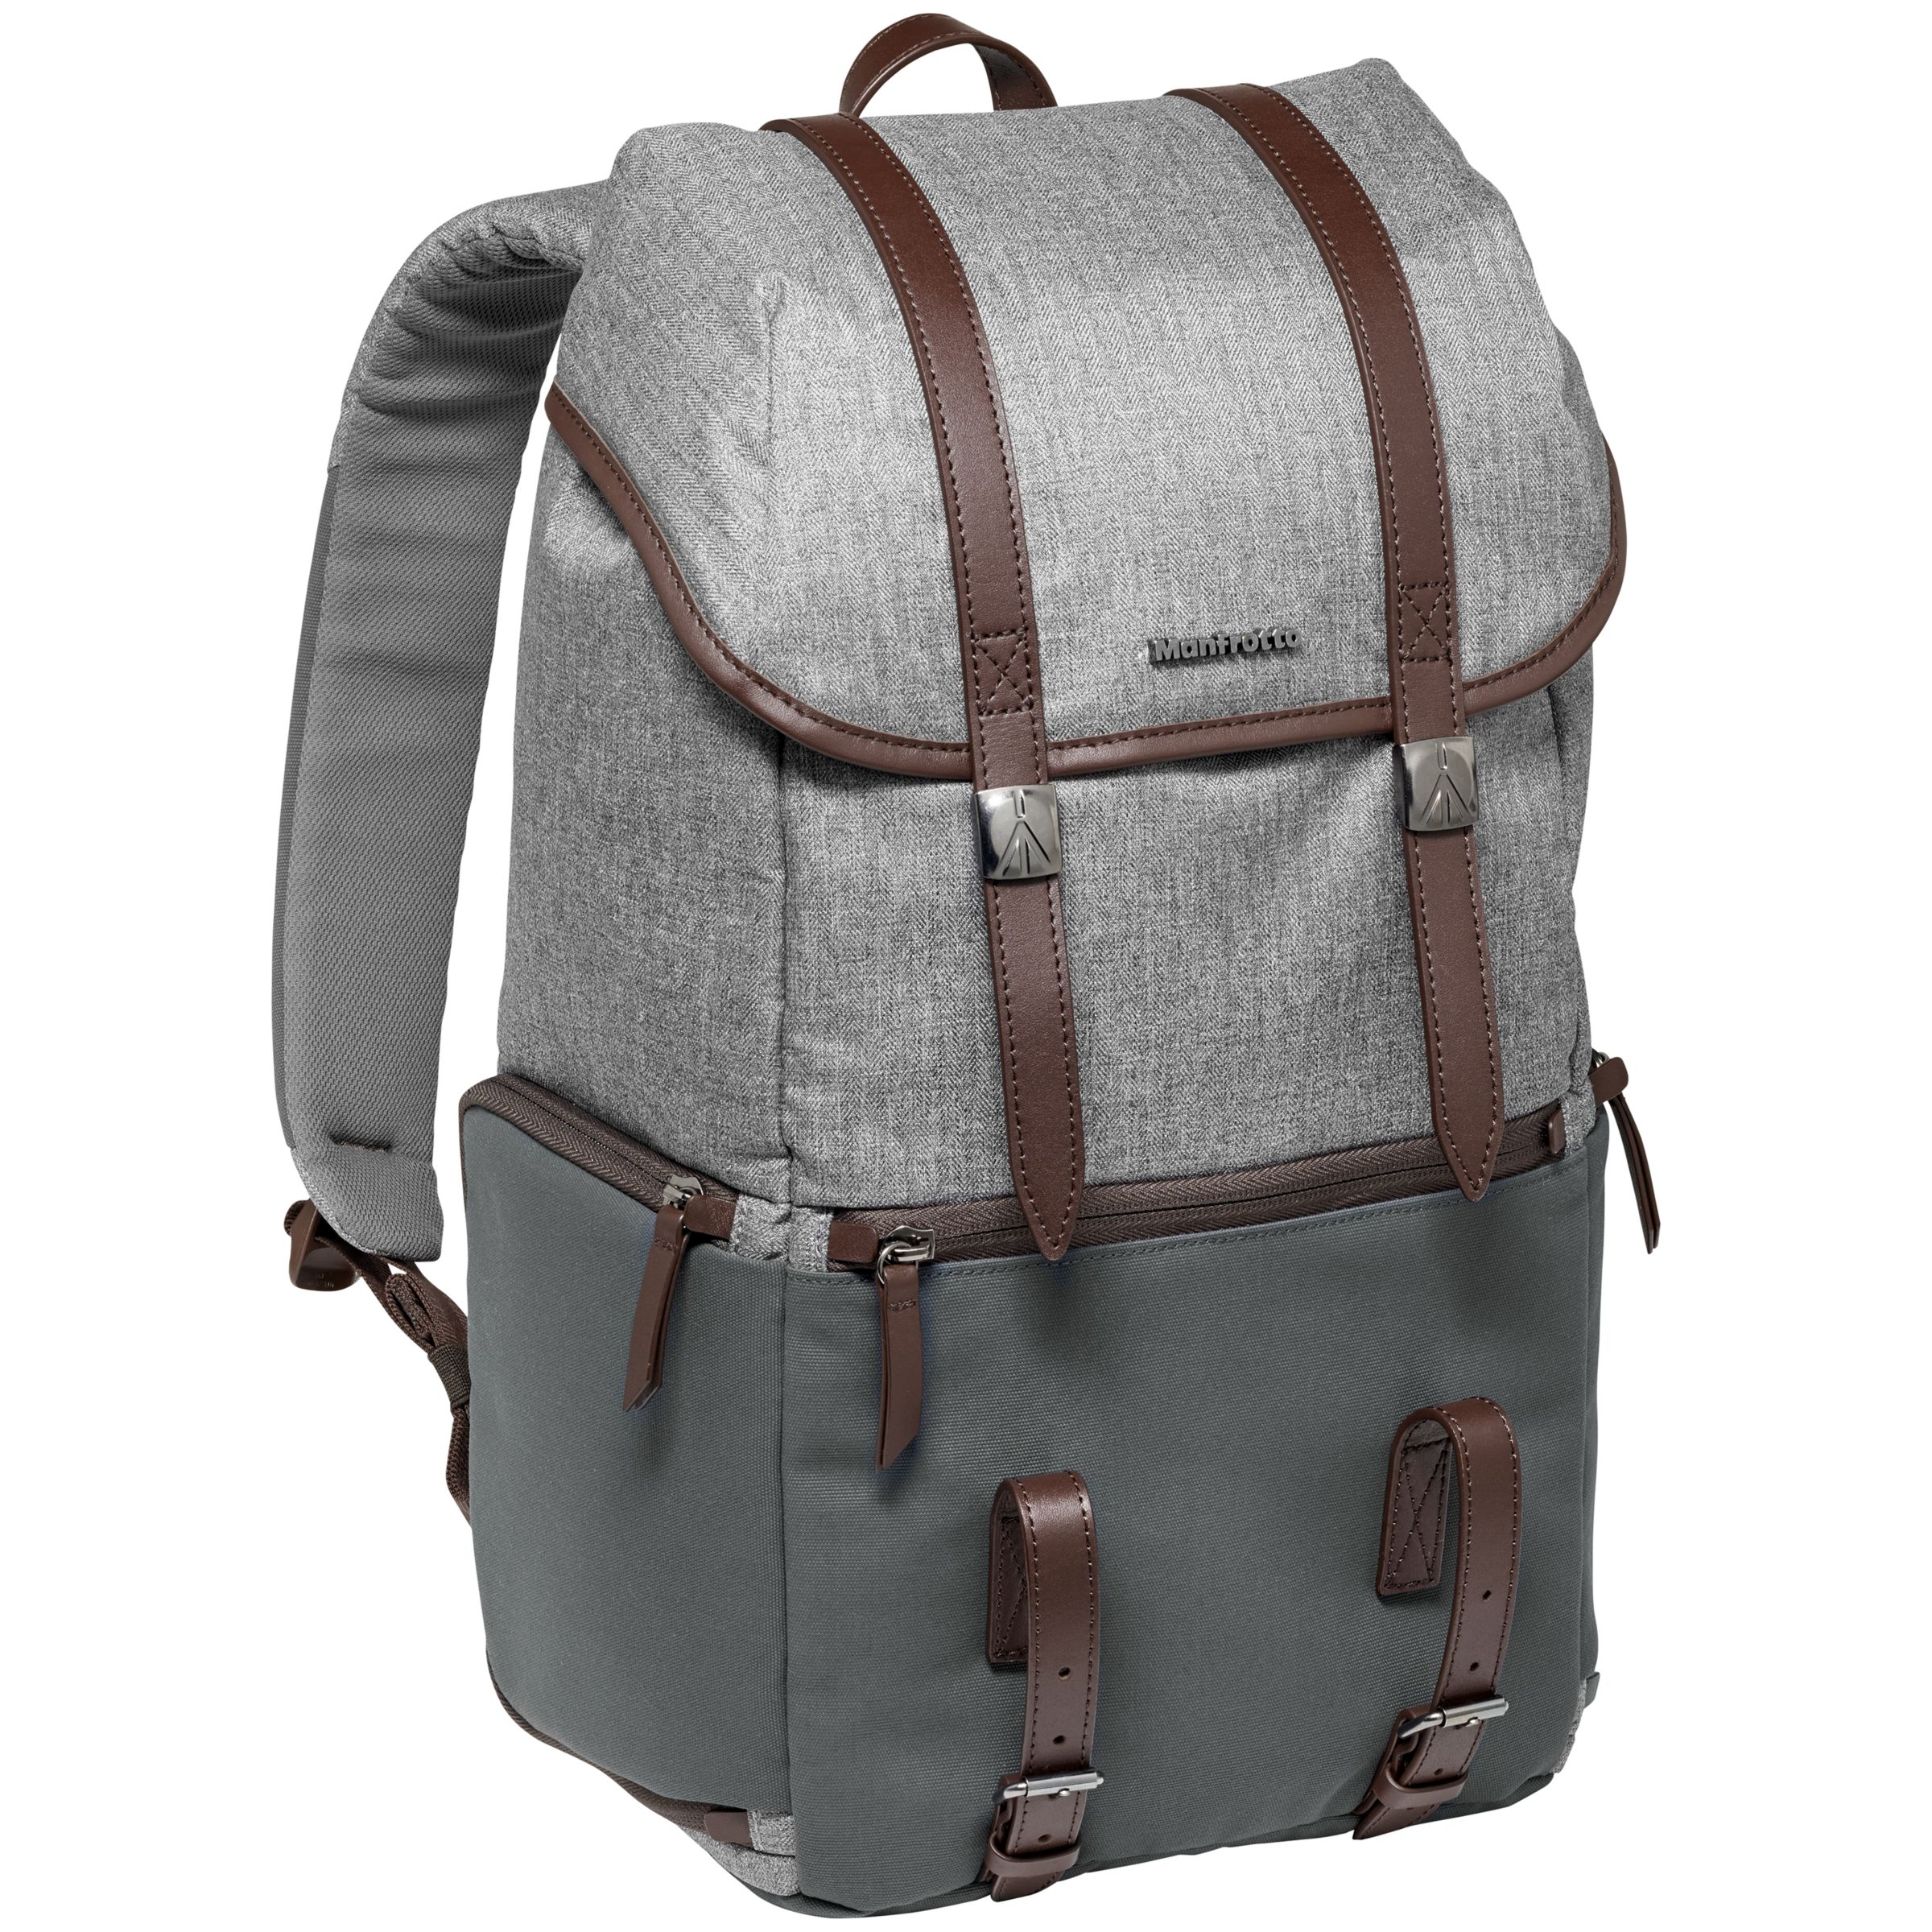 Manfrotto Manfrotto Lifestyle Windsor Camera and Laptop Backpack